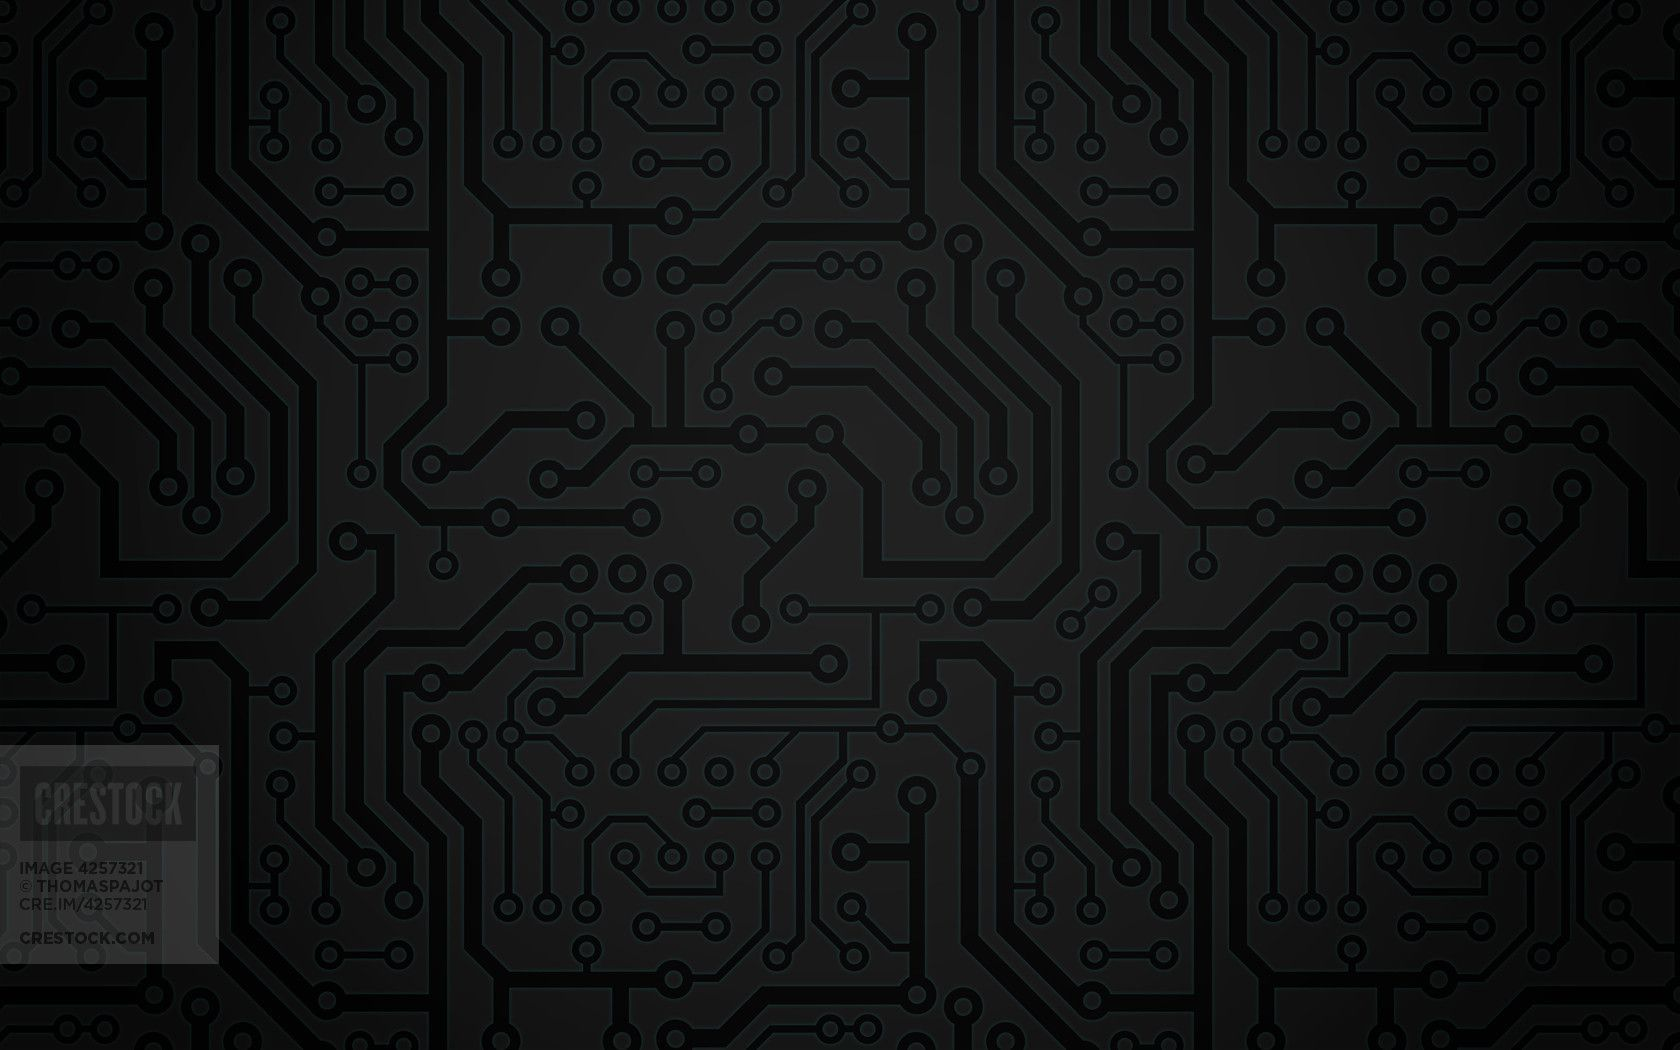 Circuit Board Wallpapers Top Free Circuit Board Backgrounds